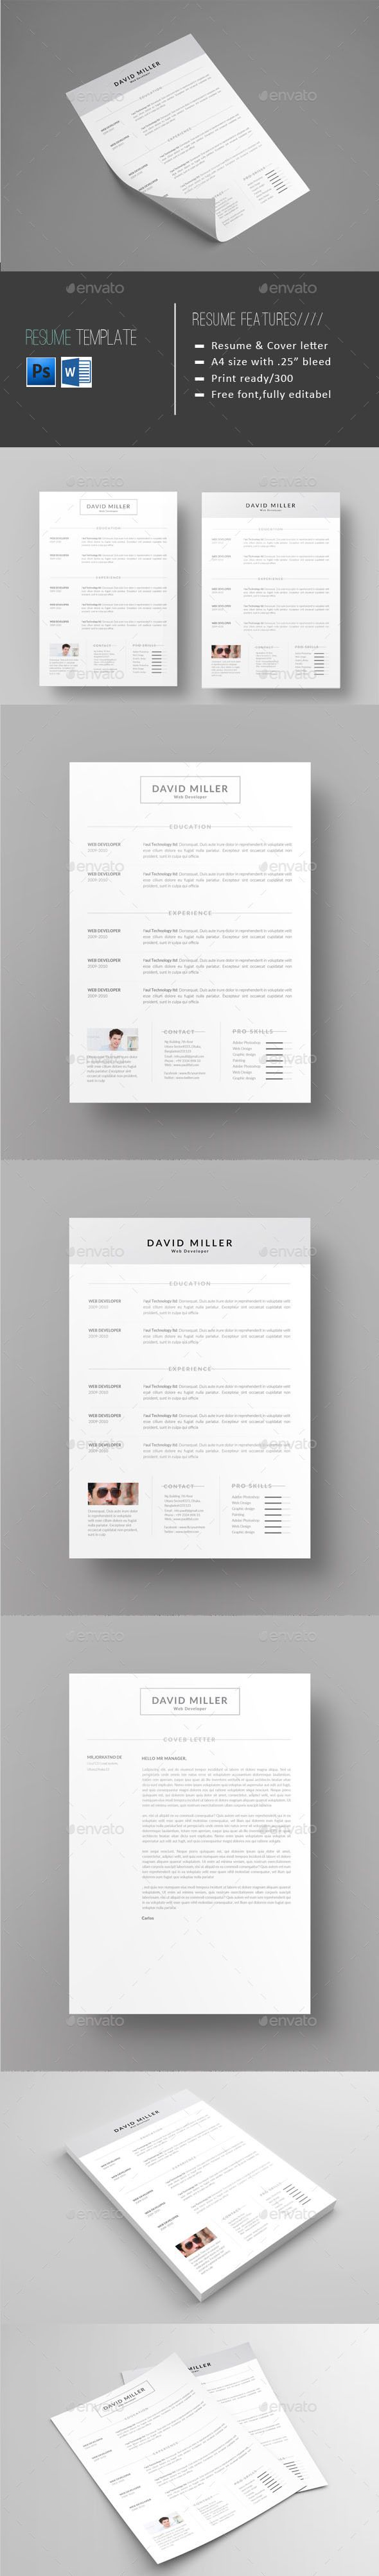 Resume Cv Templates Free Download%0A how to make cv cover letter